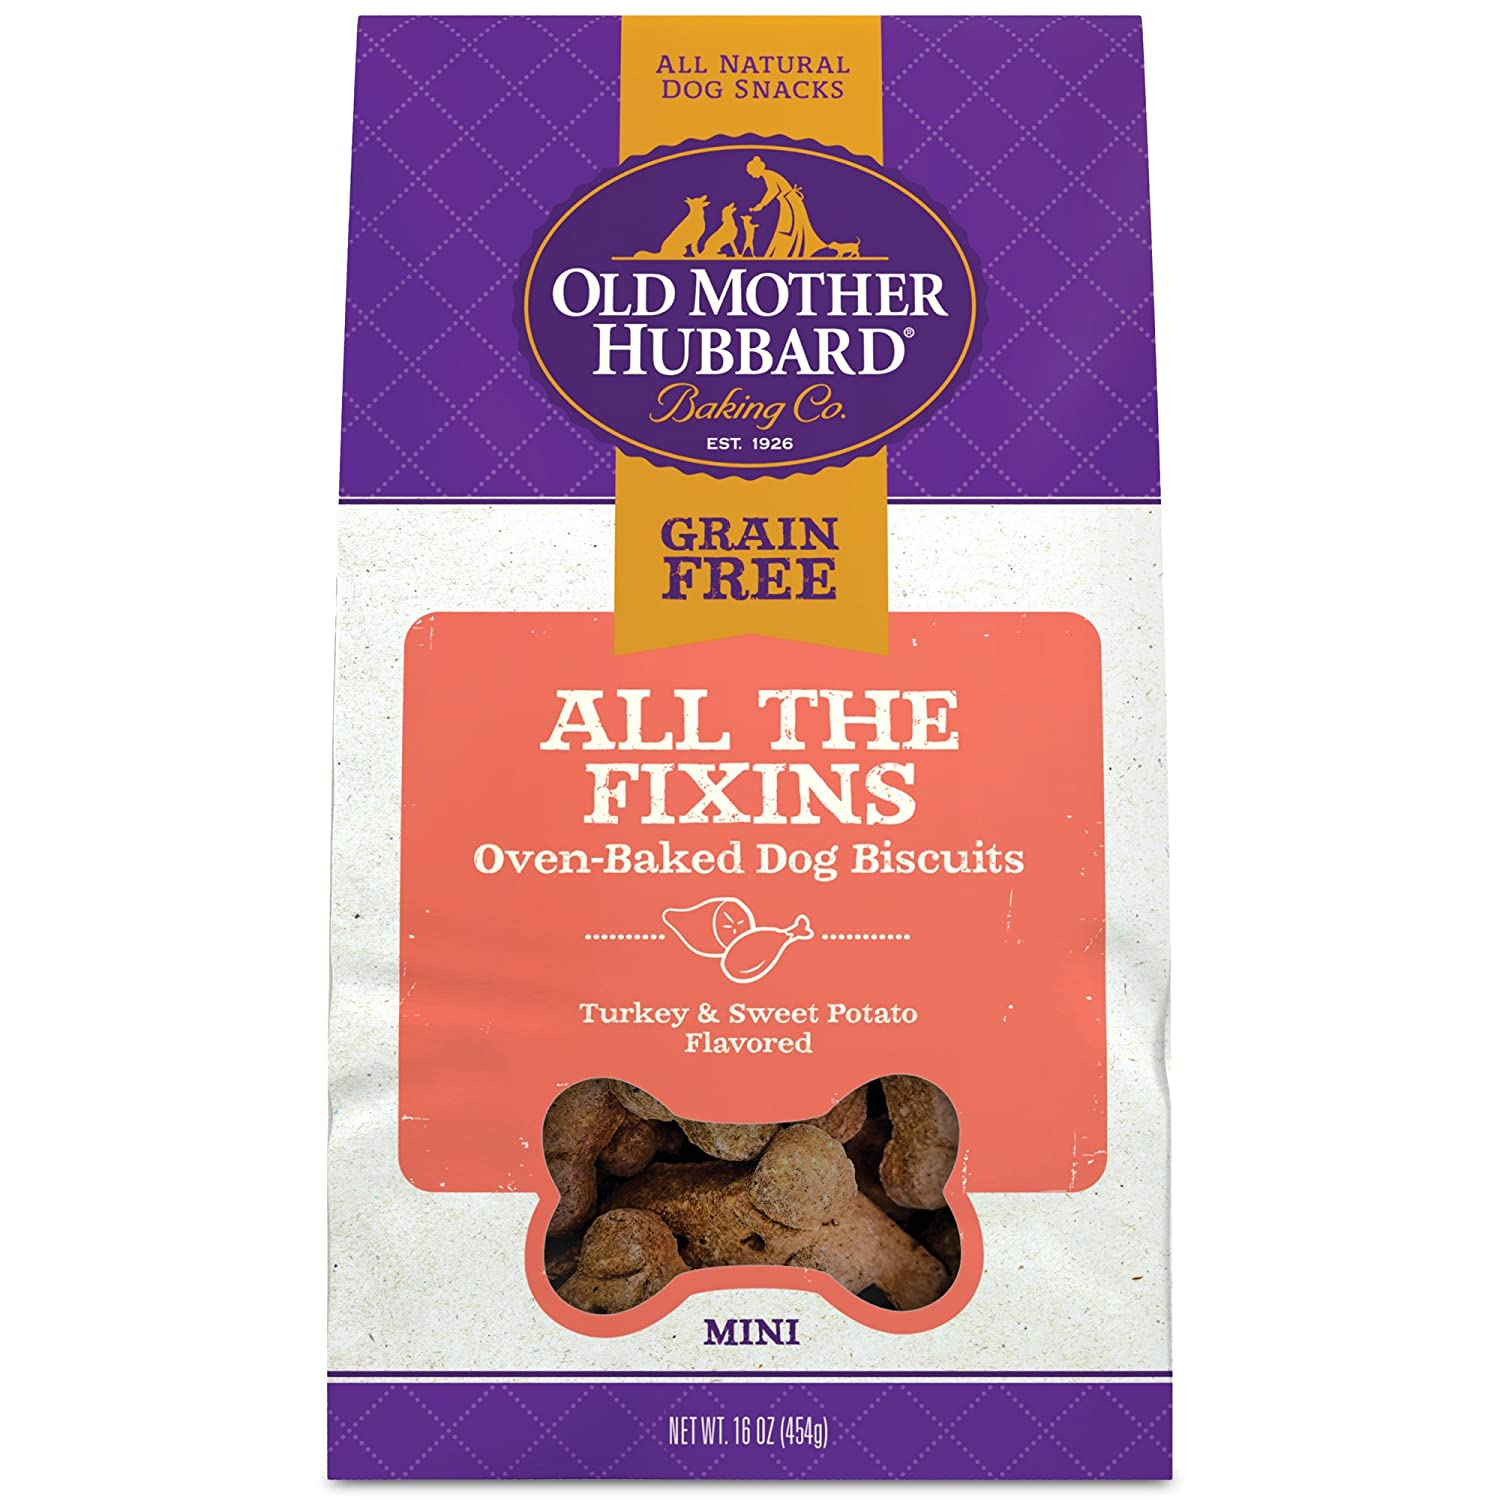 Old Mother Hubbard Mini All The Fixins Grain Free Dog Treats